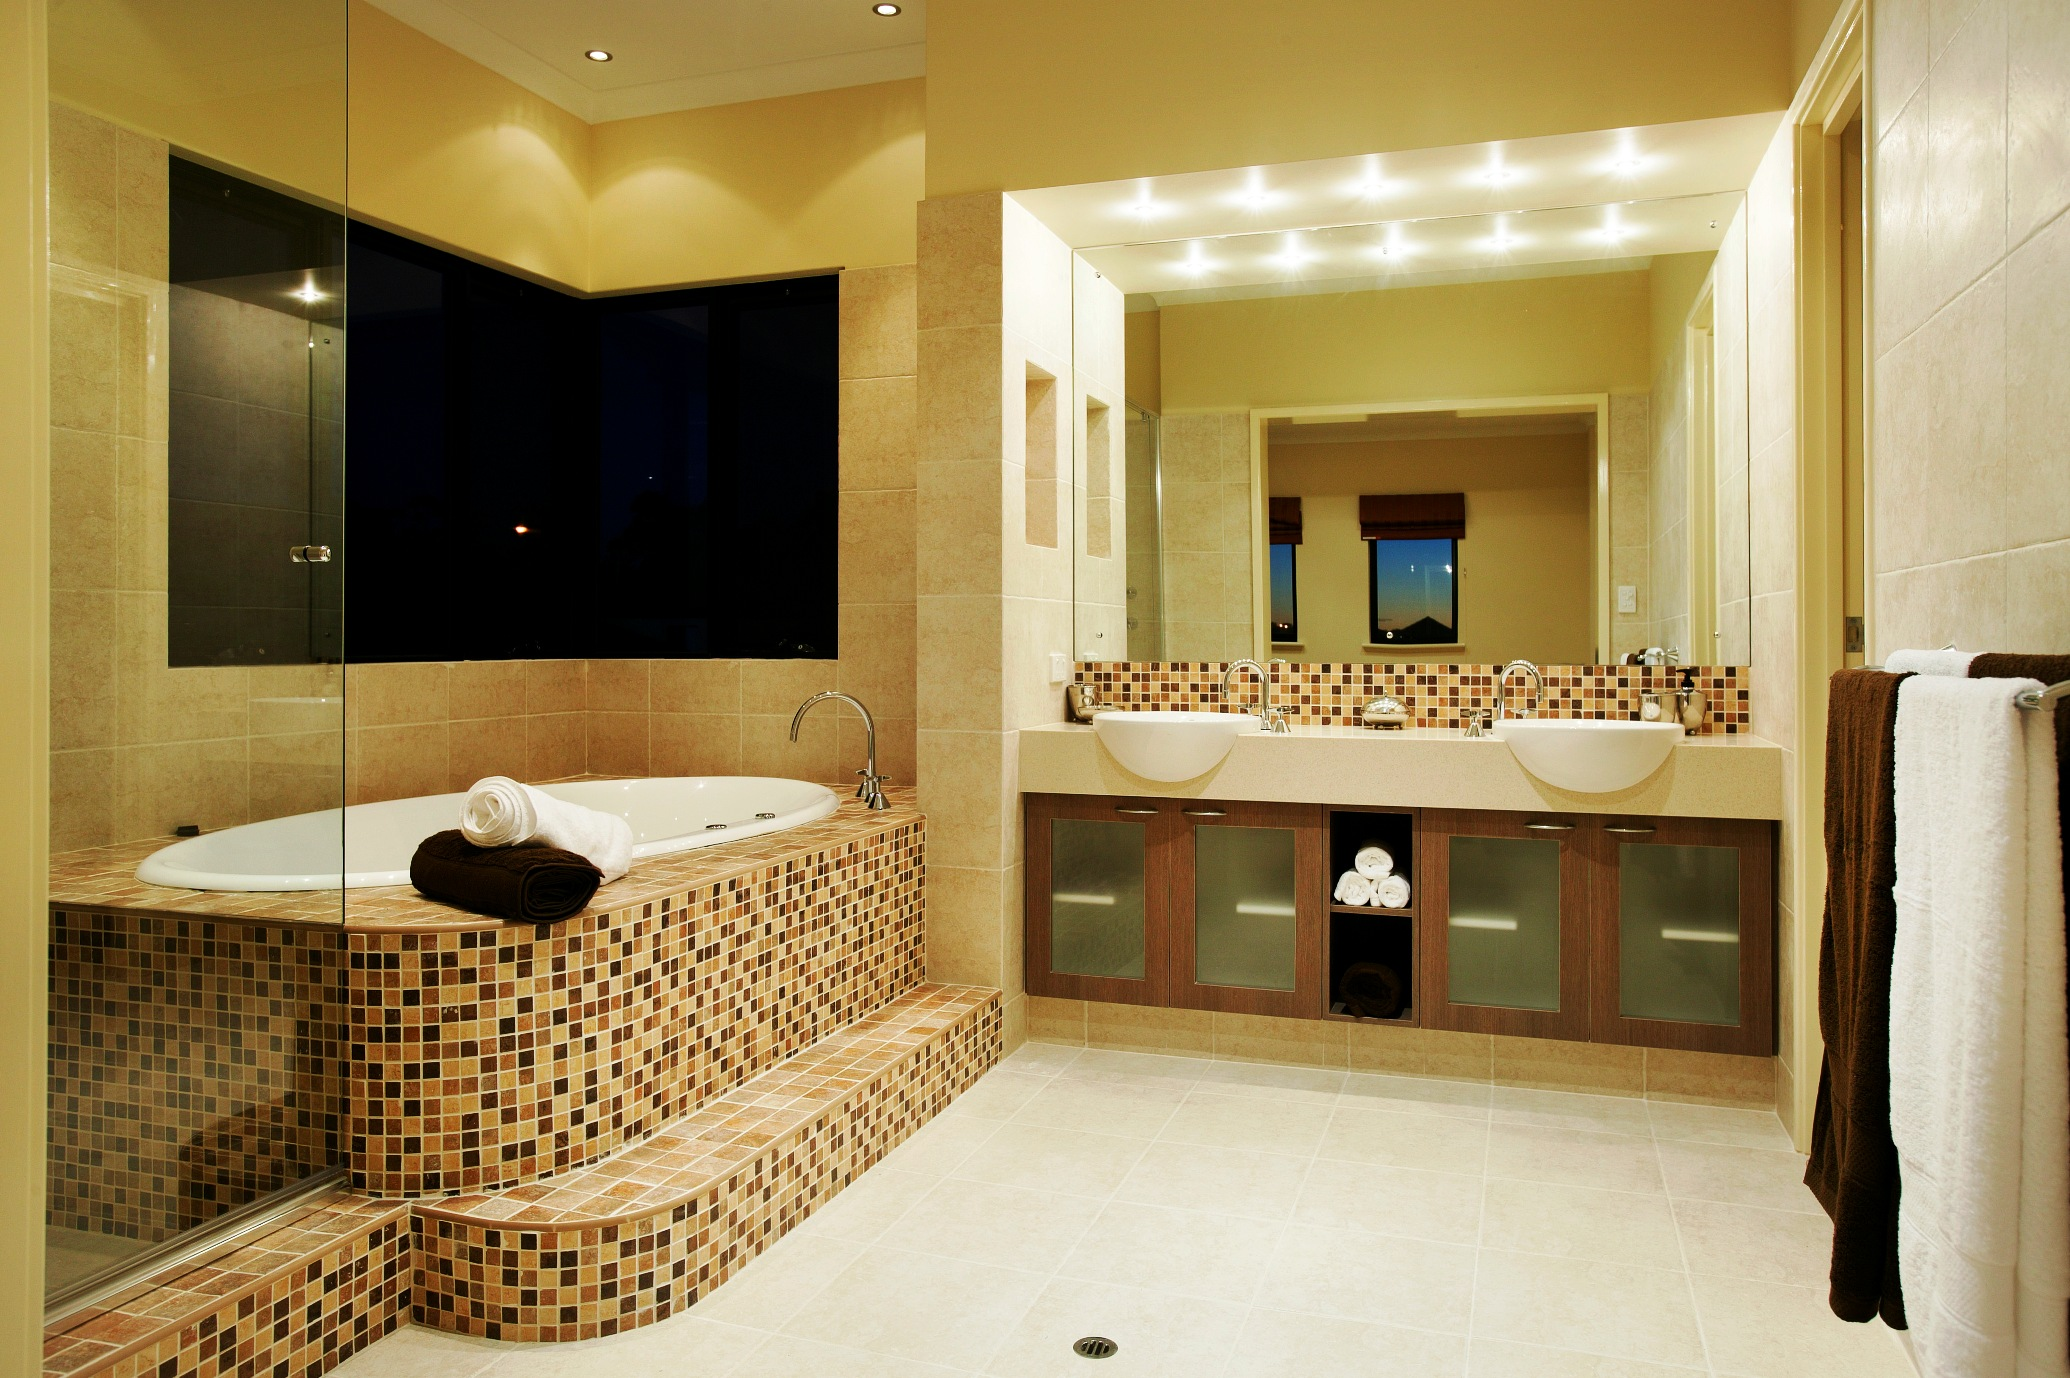 Bathroom-interior-design-new-model-home-models.jpg